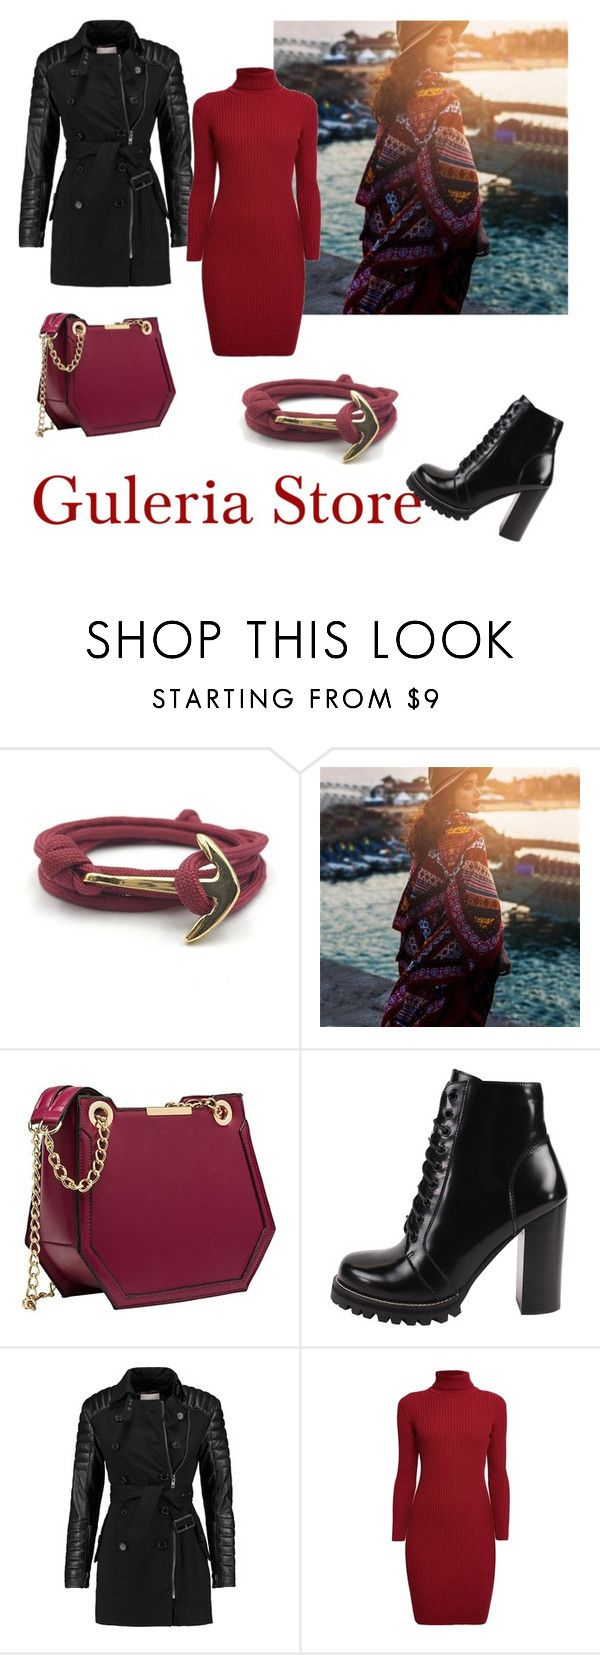 """""""Guleria store contest"""" by mary909090 ❤ liked on Polyvore featuring Jeffrey Campbell, W118 by Walter Baker and Rumour London"""